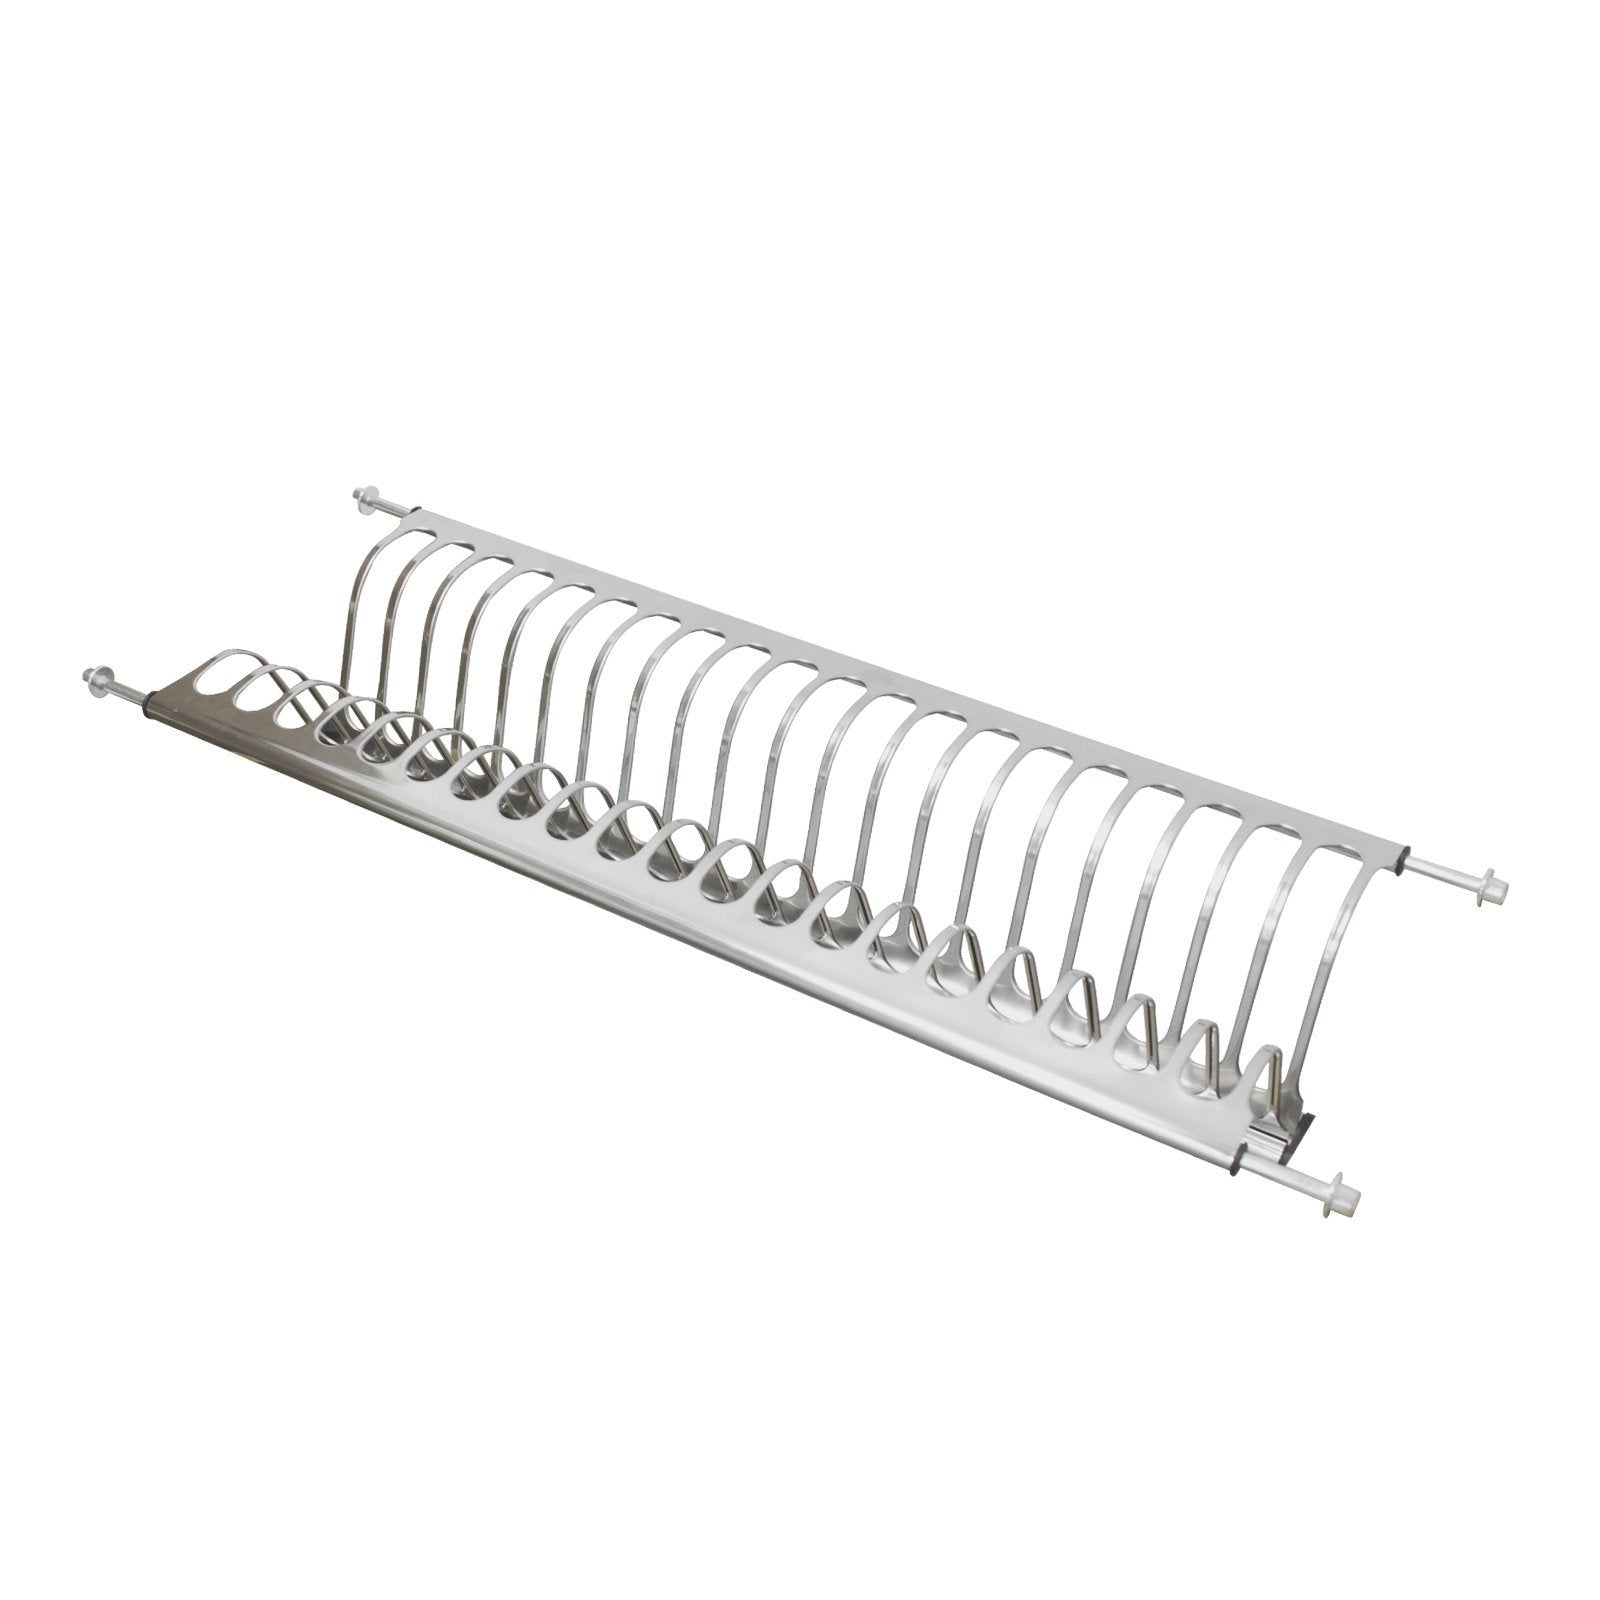 Order now probrico stainless steel dish drying rack for the cabinet 900mm